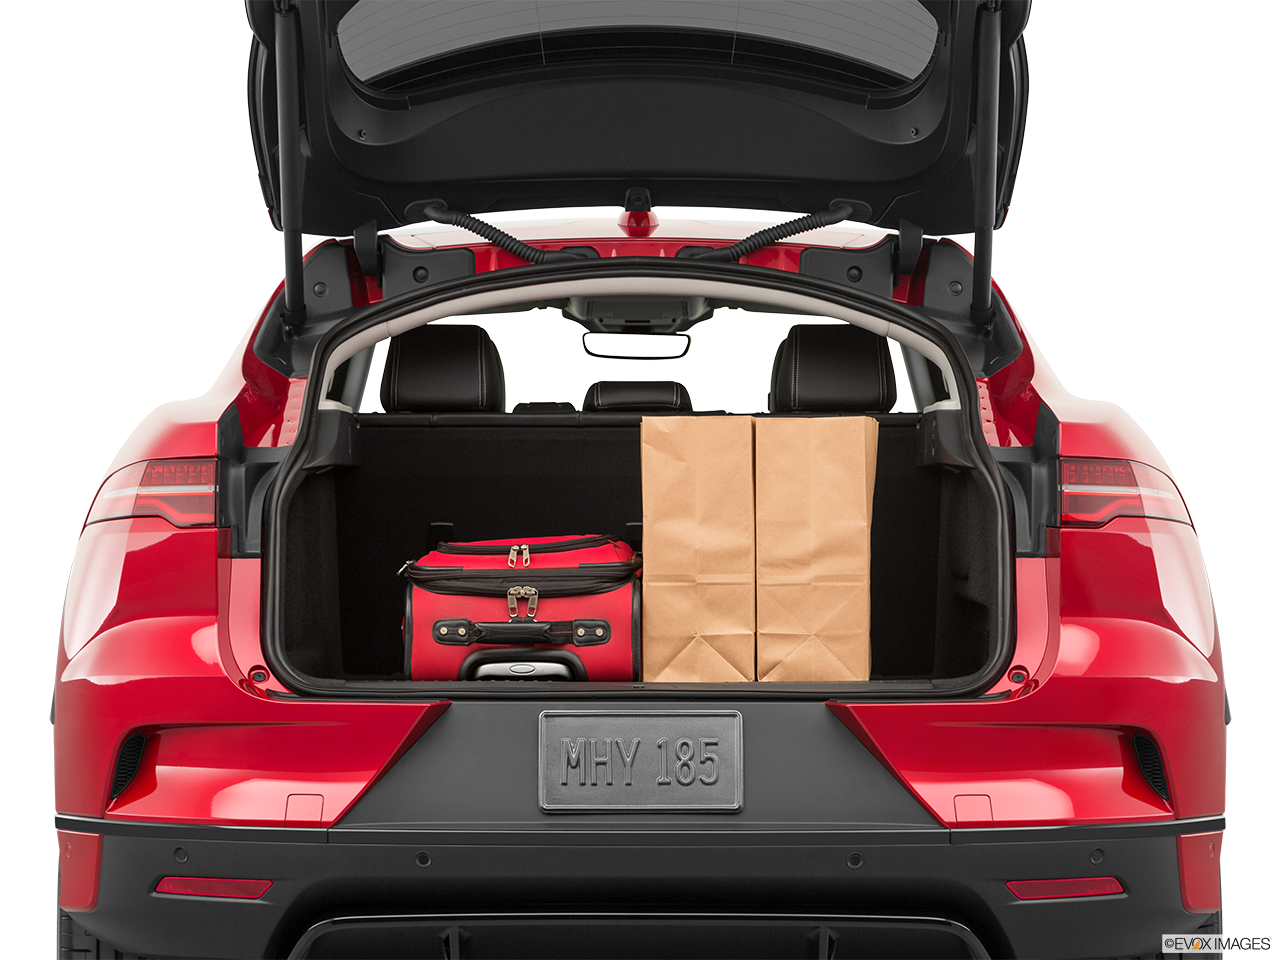 Trunk view of the Jaguar I-Pace